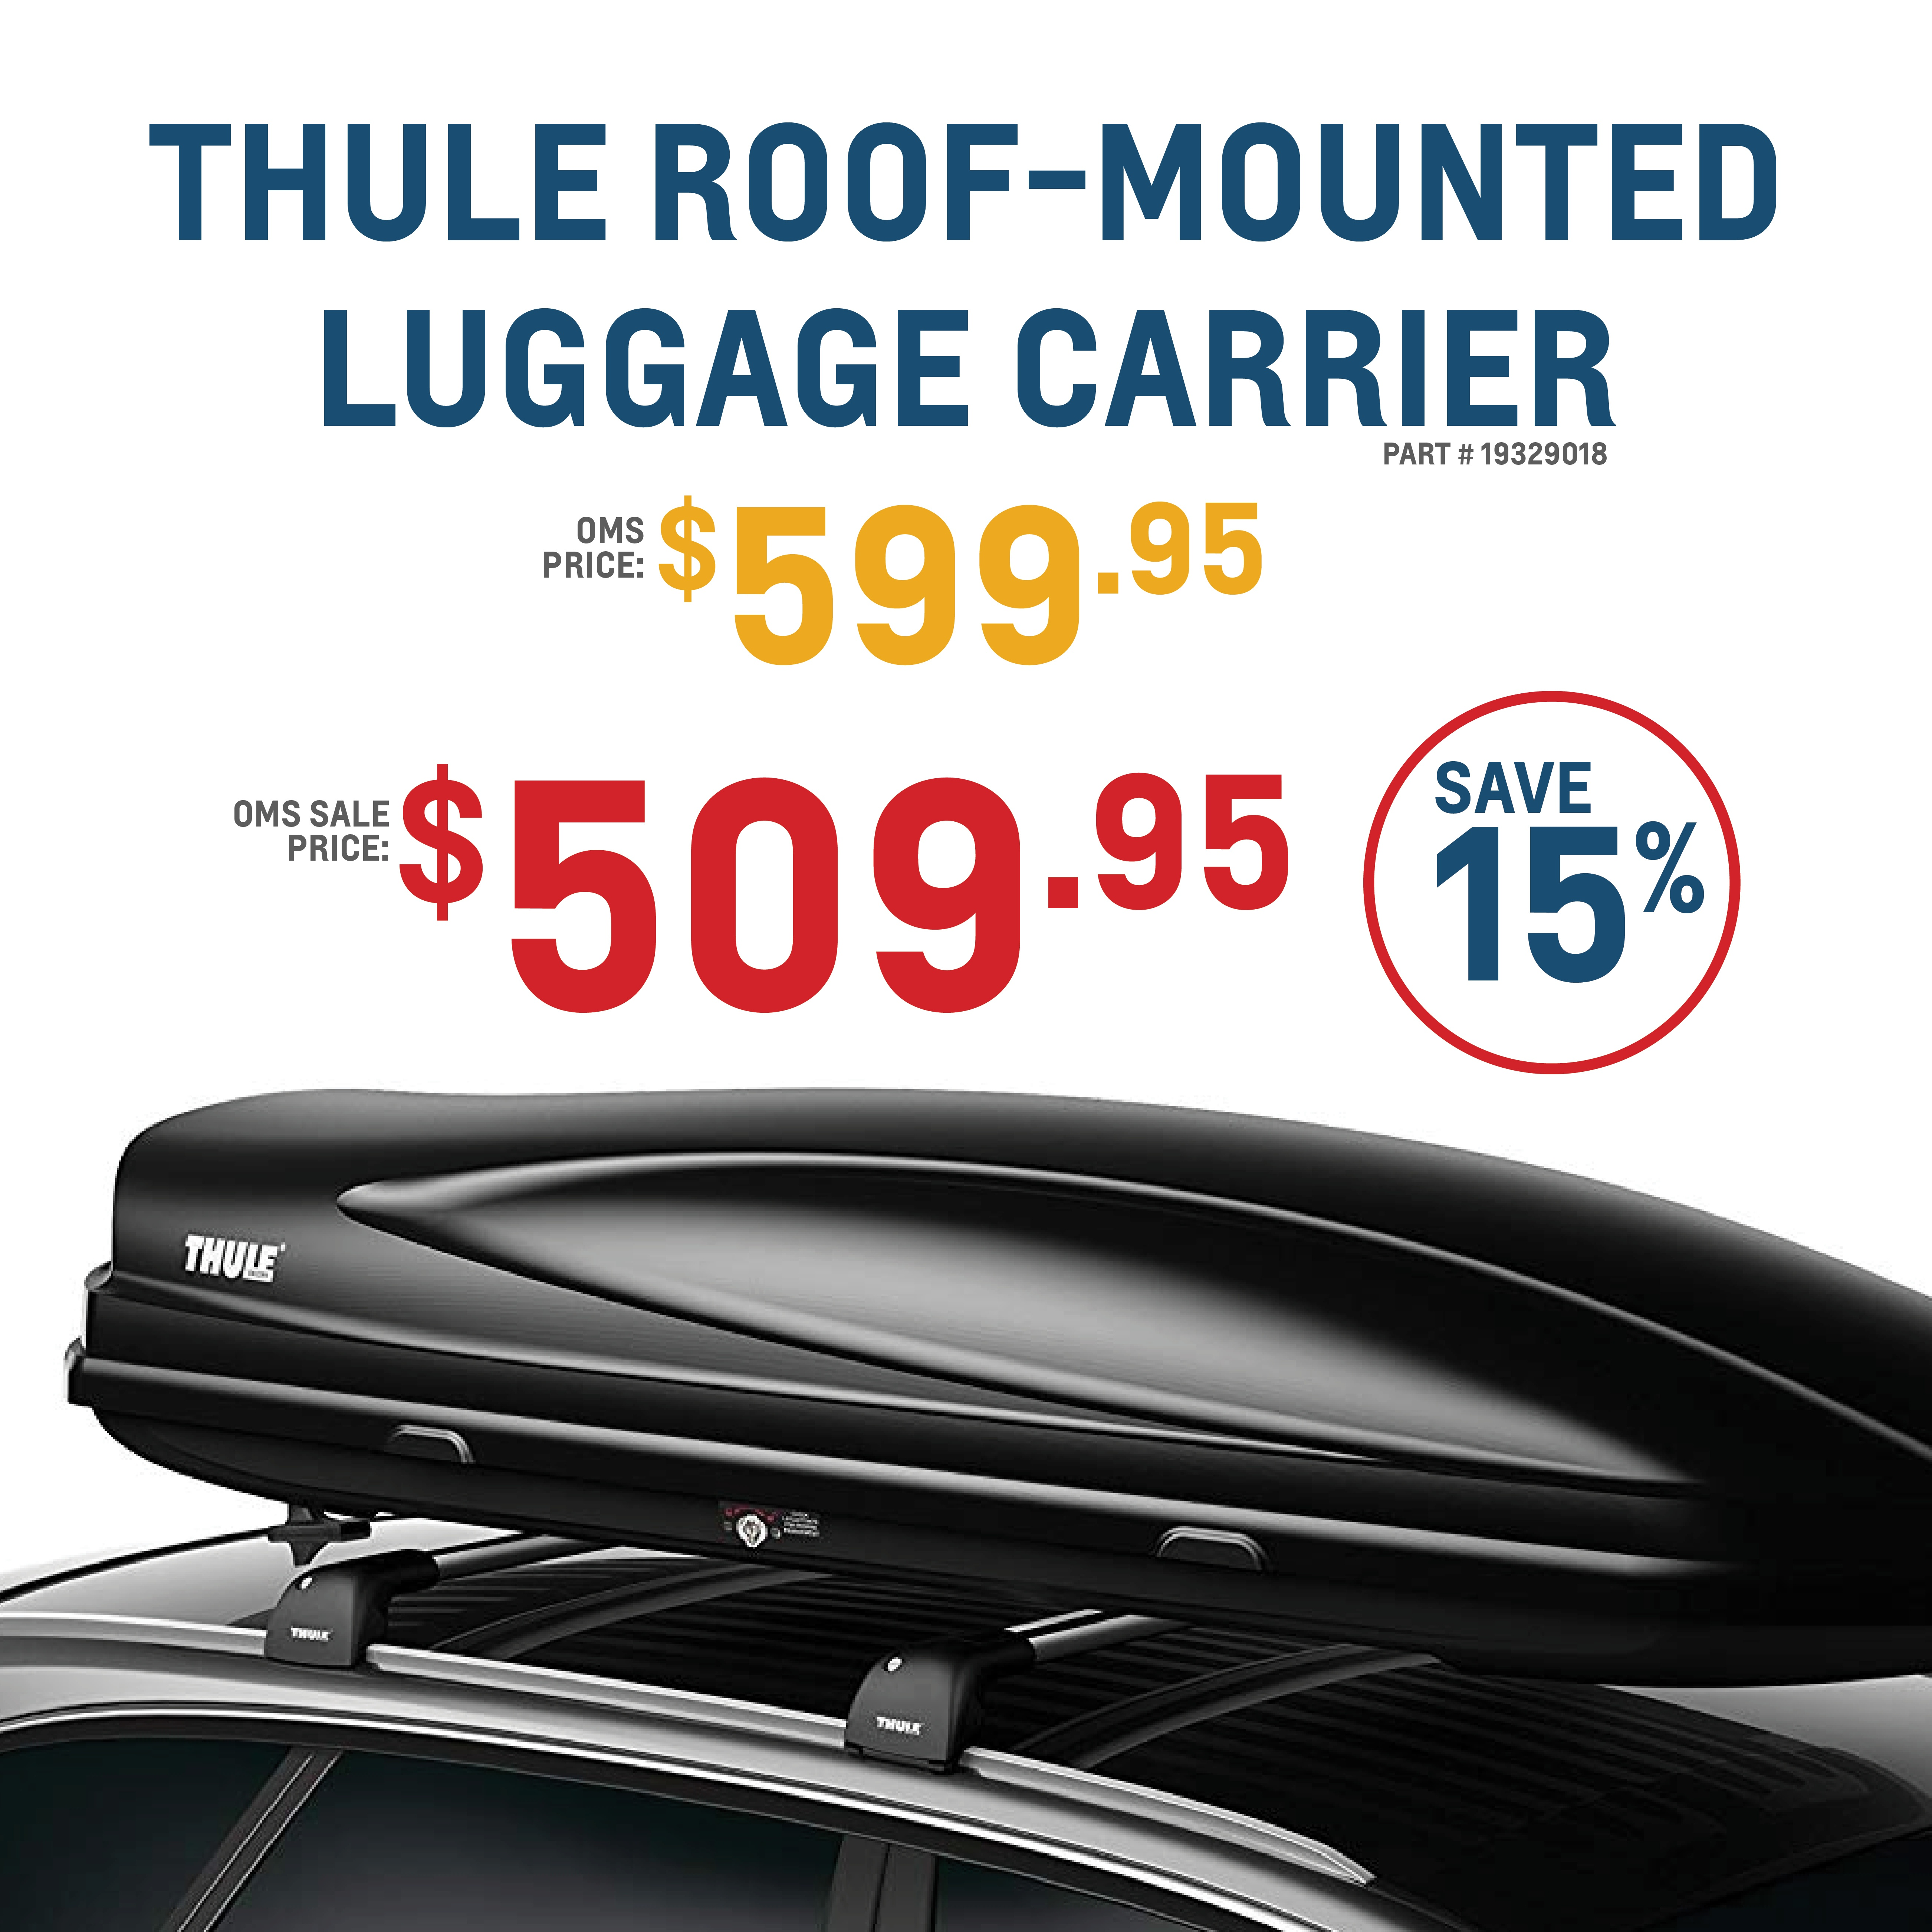 Thule Roof-Mounted Luggage Carrier